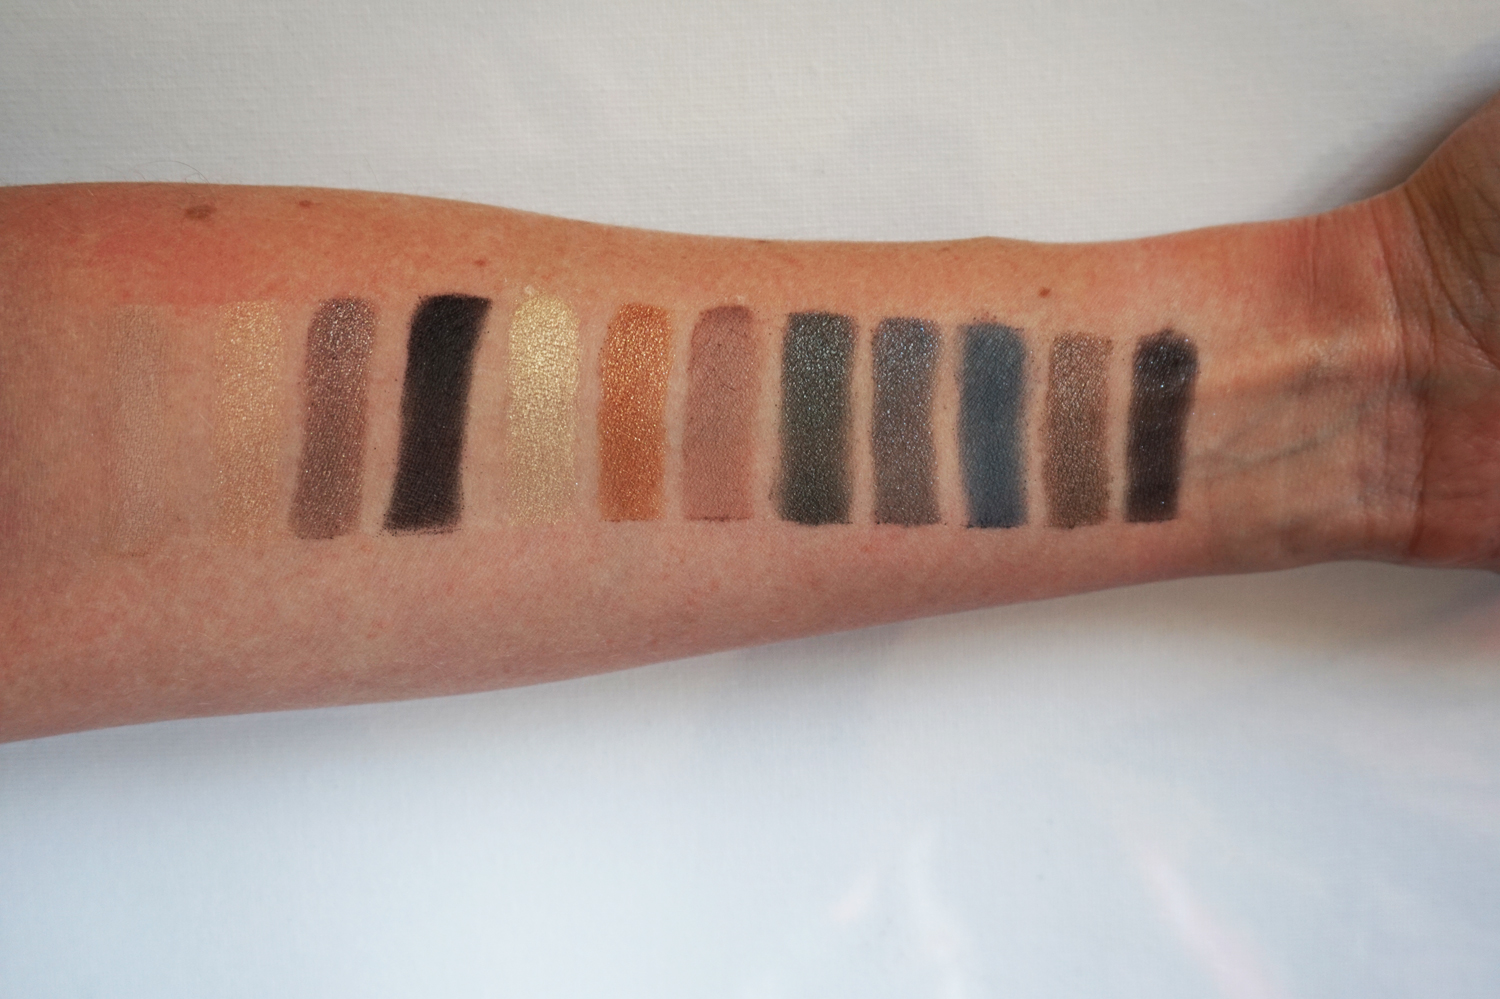 NARS L'amour toujours l'amour palette swatch